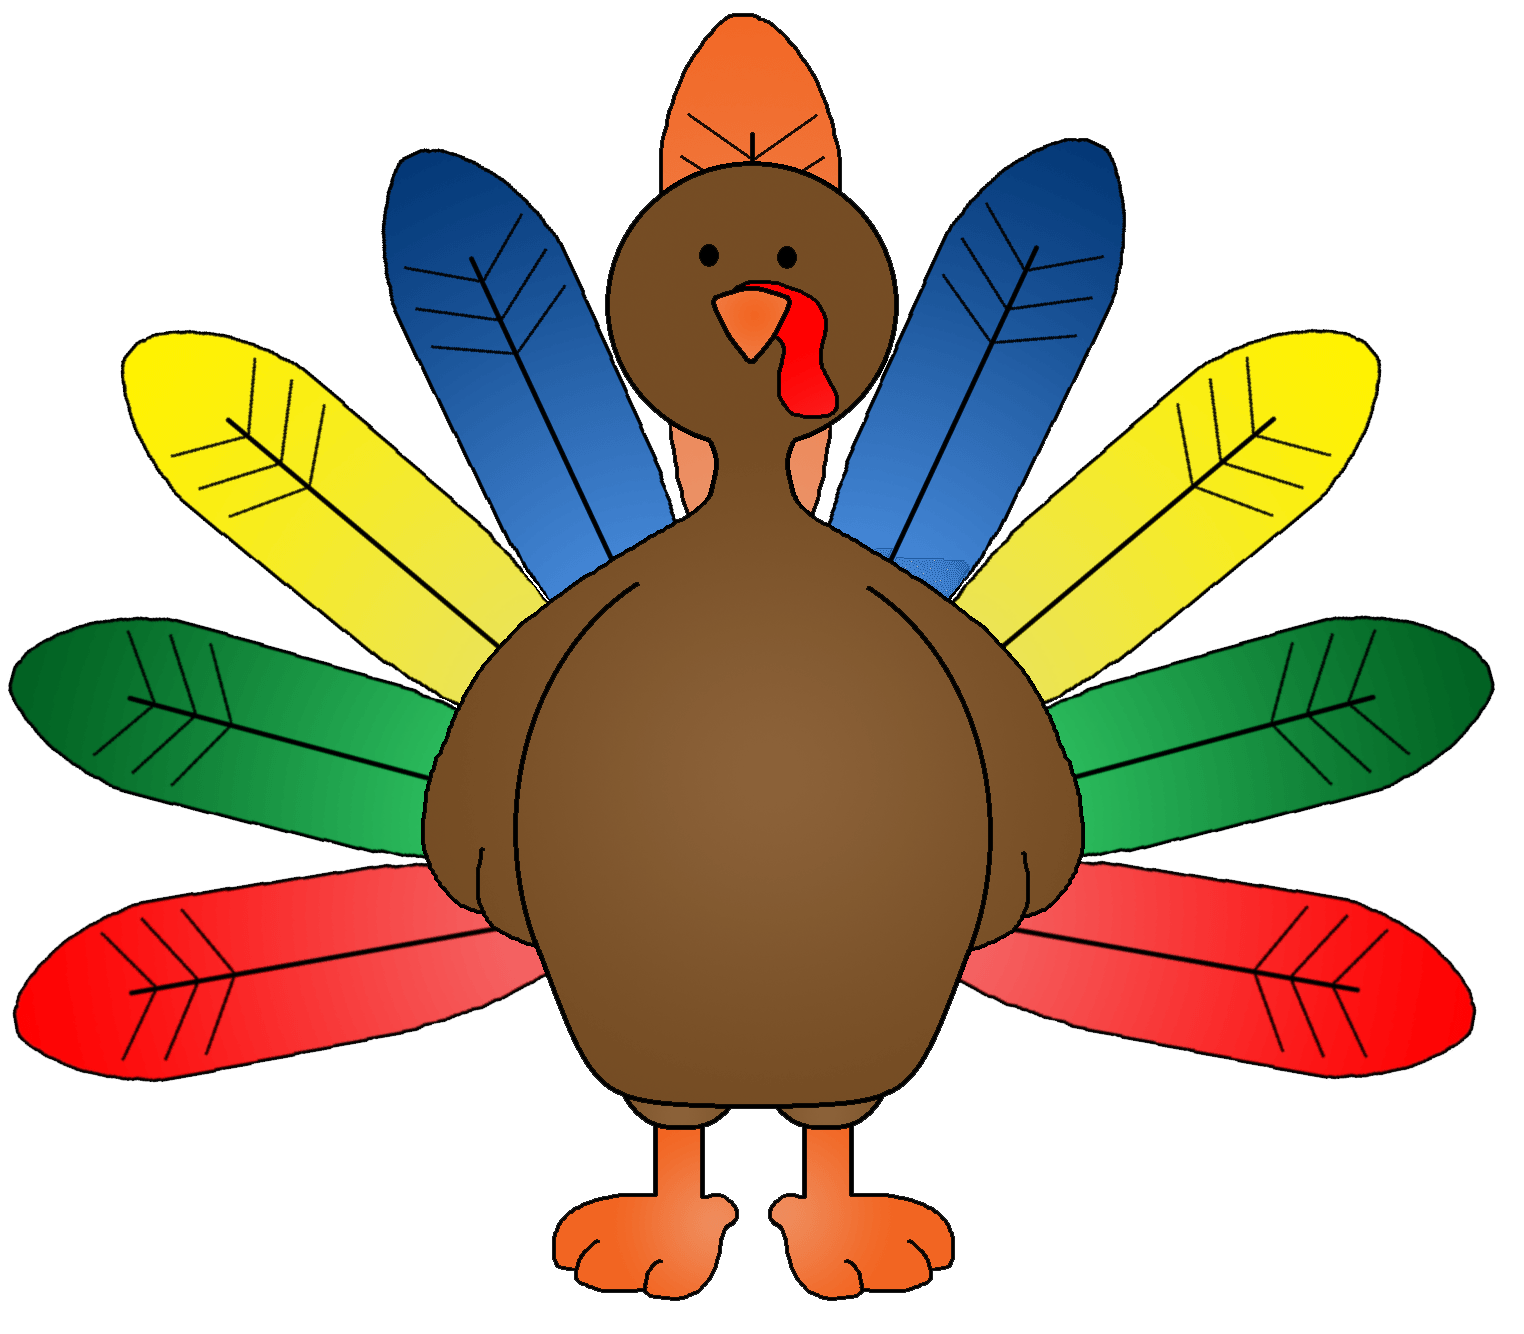 Dancing turkey clipart jpg freeuse happy birthday turkey clipart - Clipground jpg freeuse